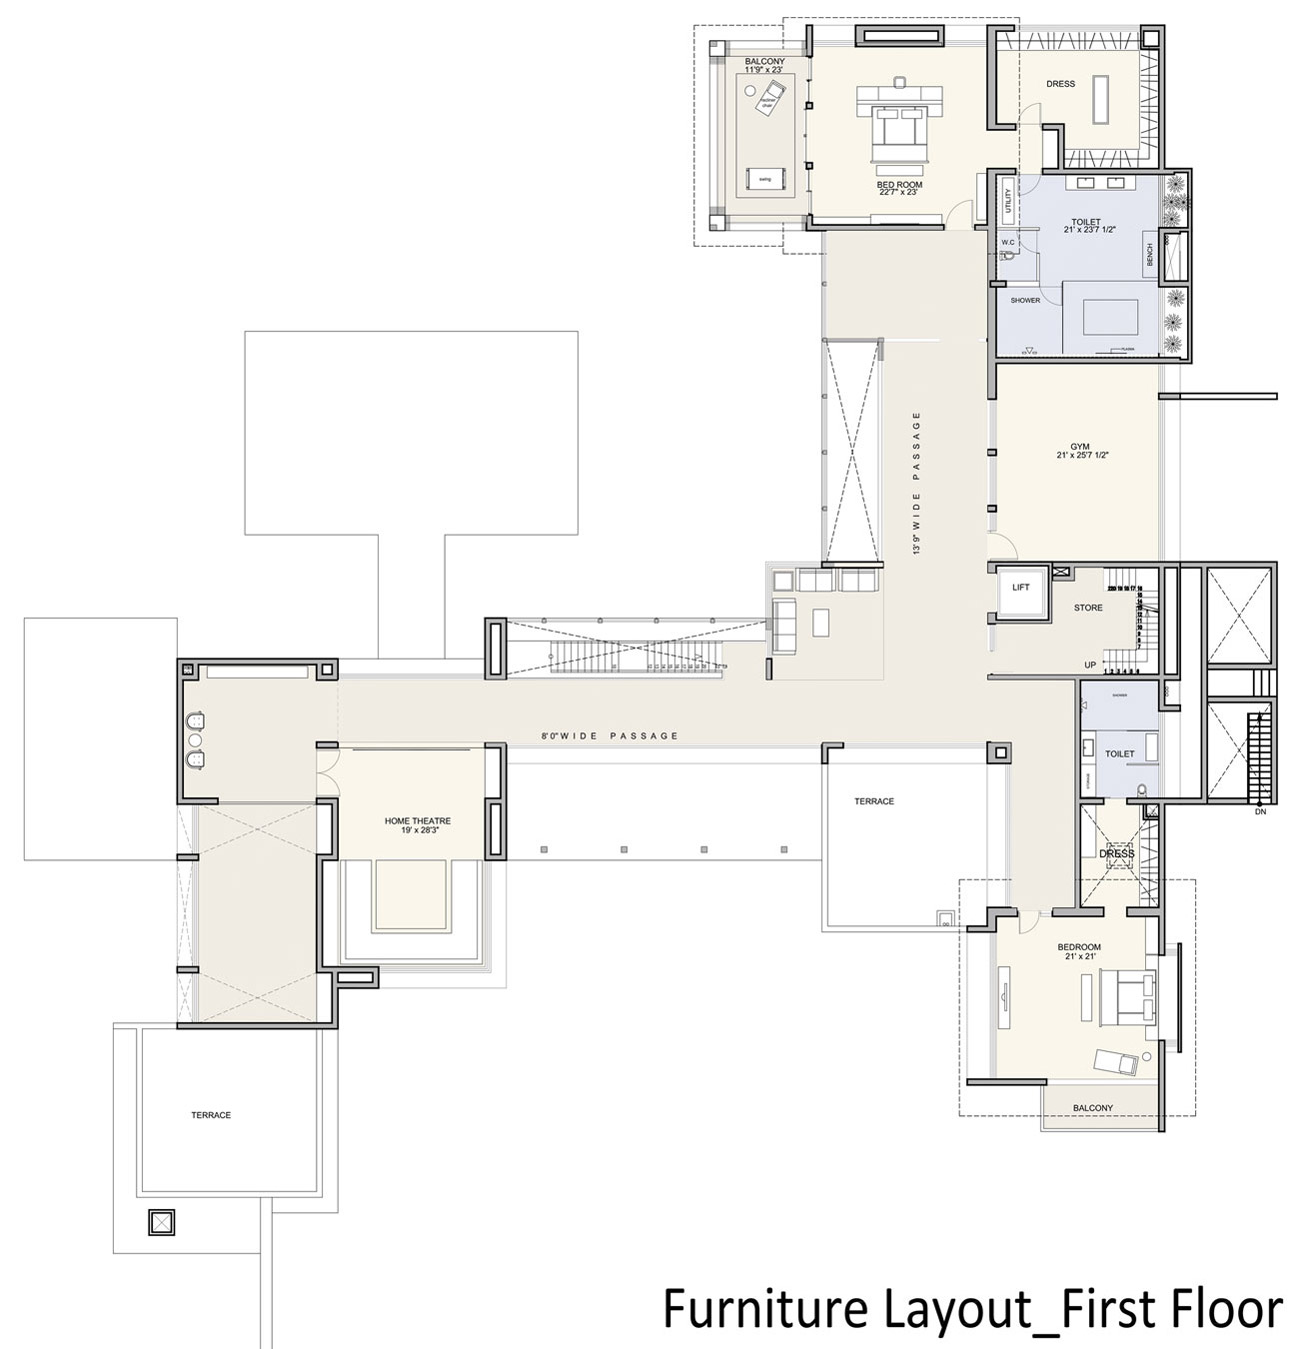 First Floor Furniture Layout Contemporary House In Ahmedabad India